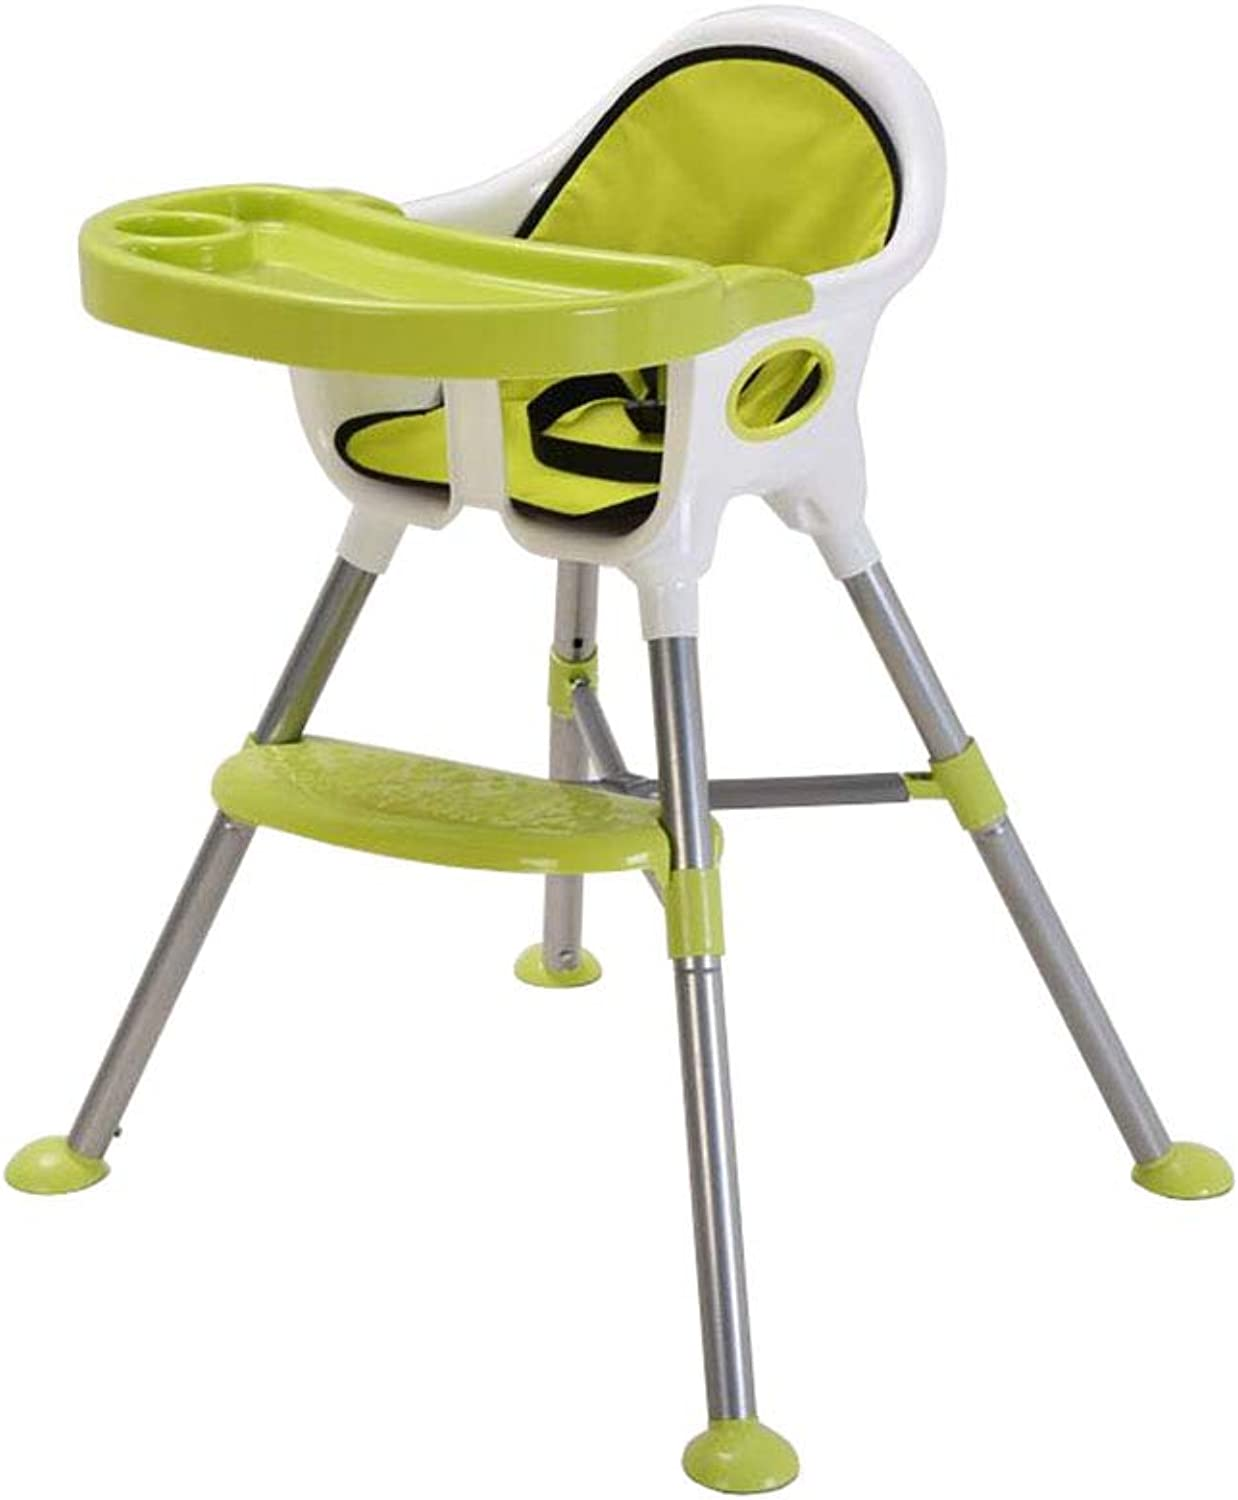 Baby Highchair Kids Feeding Seat Chair Table Chair Dining Chair